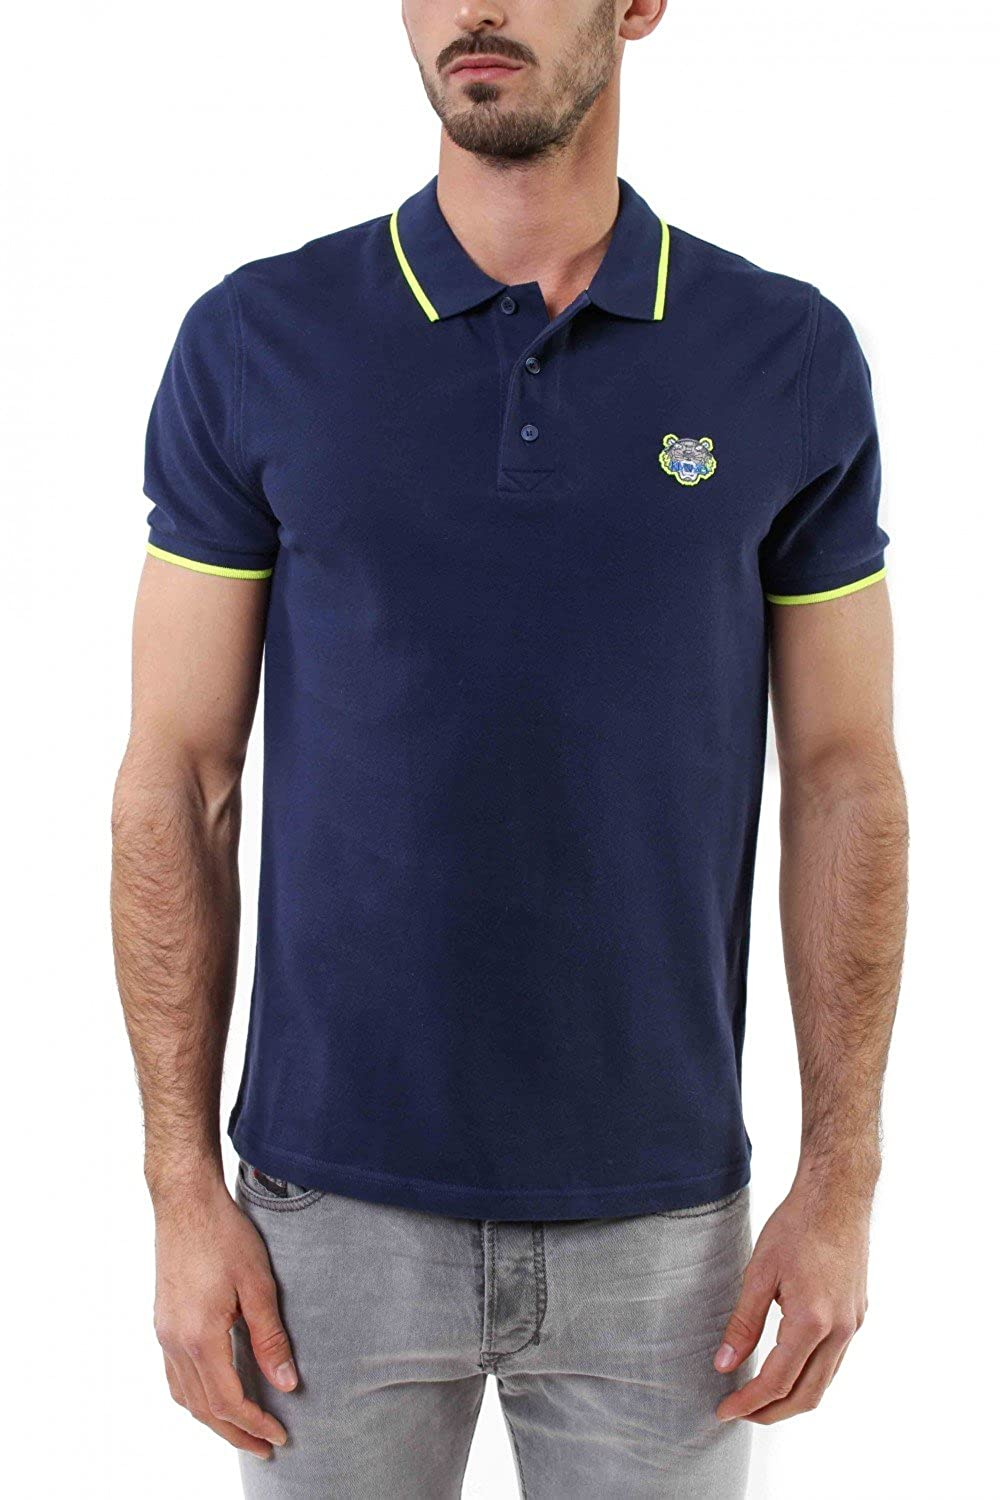 821b19b12b Kenzo Authentic Men's Navy Polo with Lime Tipped at Amazon Men's ...